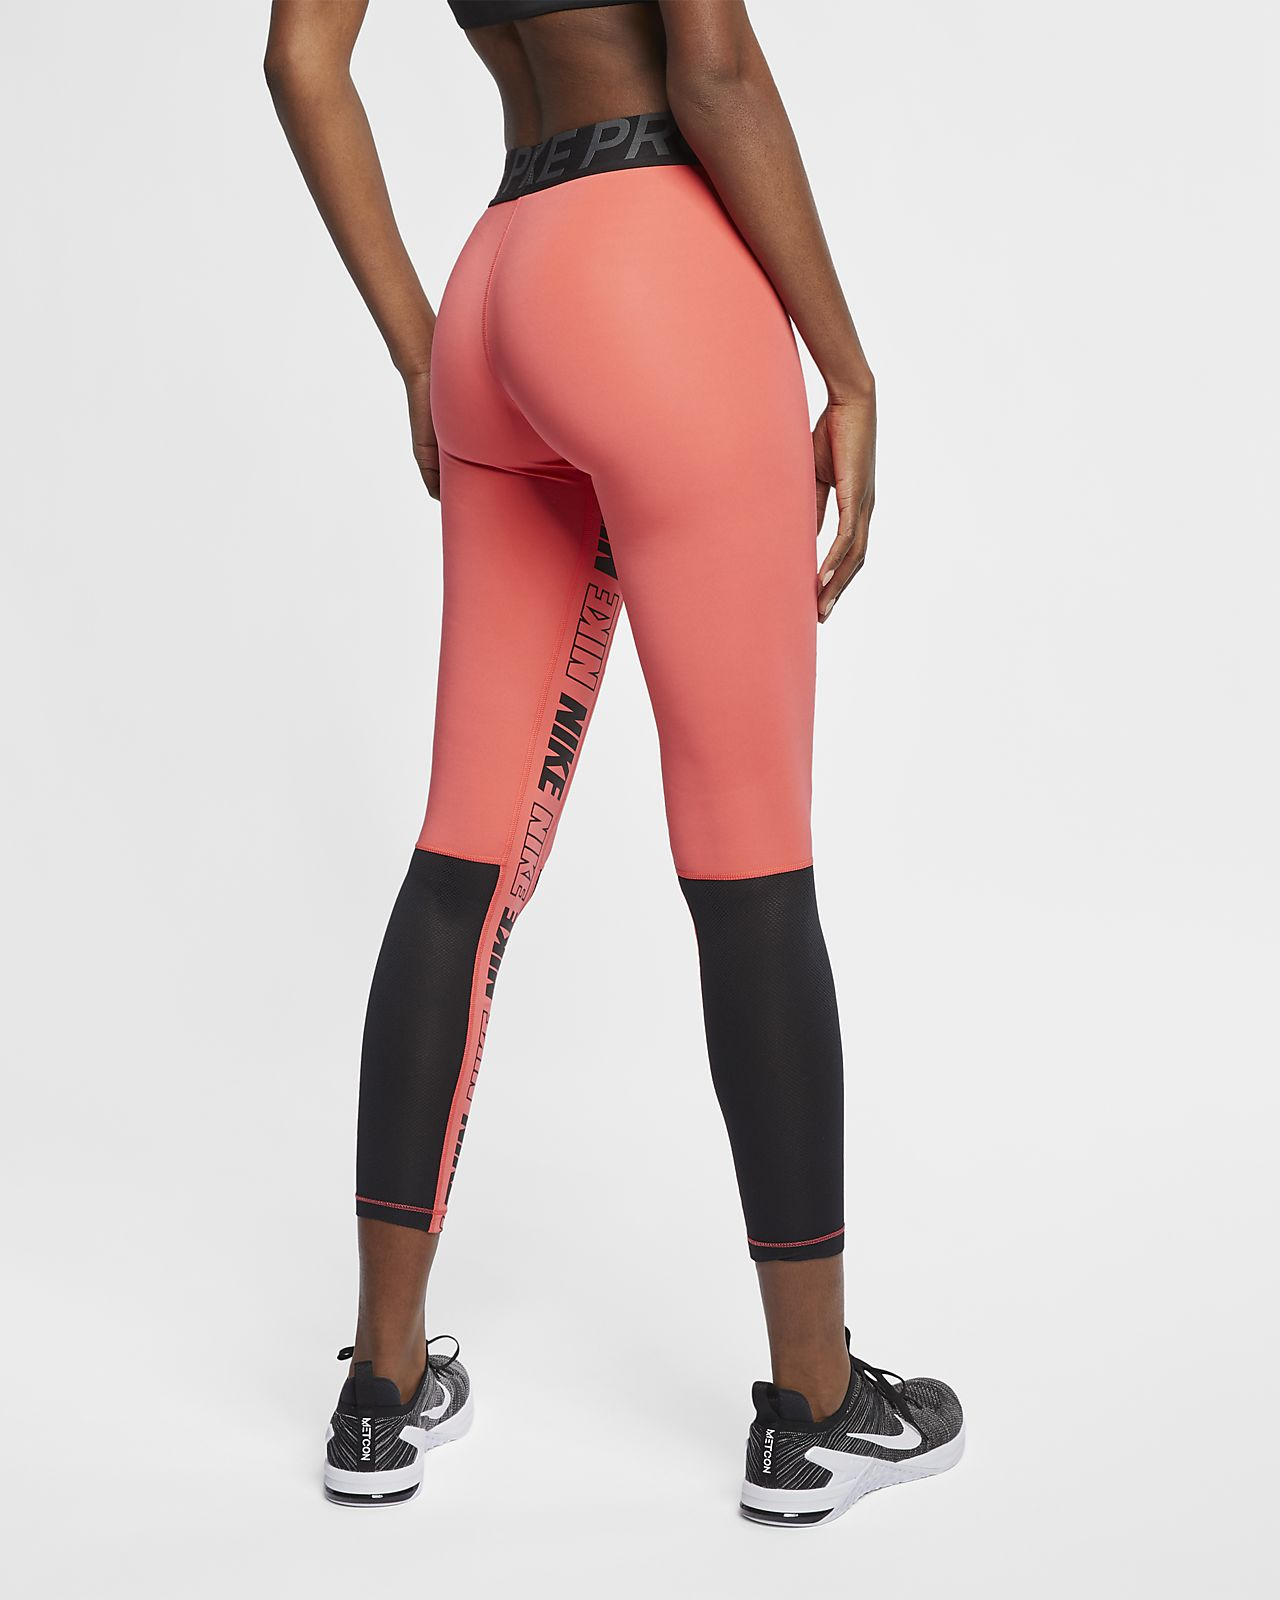 12691ea6dc466f Nike Pro Women's Graphic Tights. Nike.com